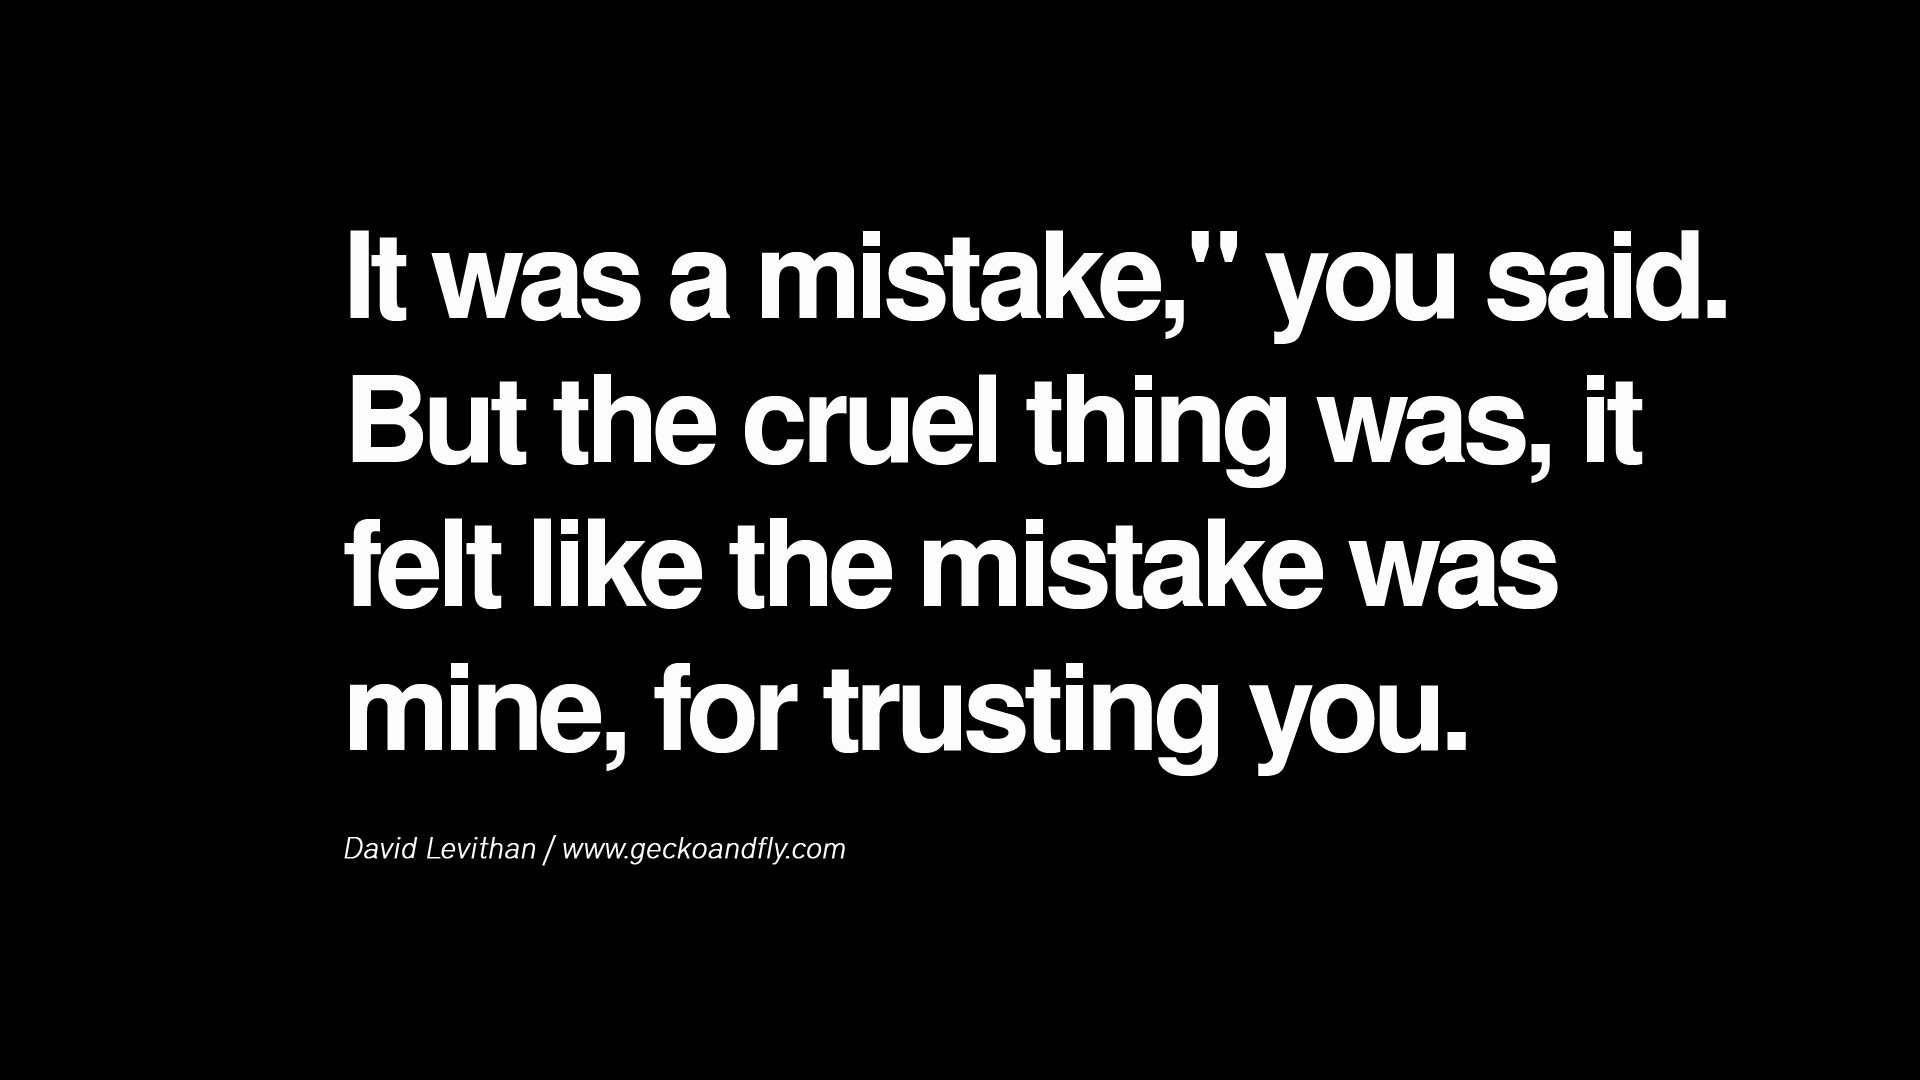 Movie Quotes About Betrayal Quotesgram: Trust Quotes Betrayal Quotes. QuotesGram